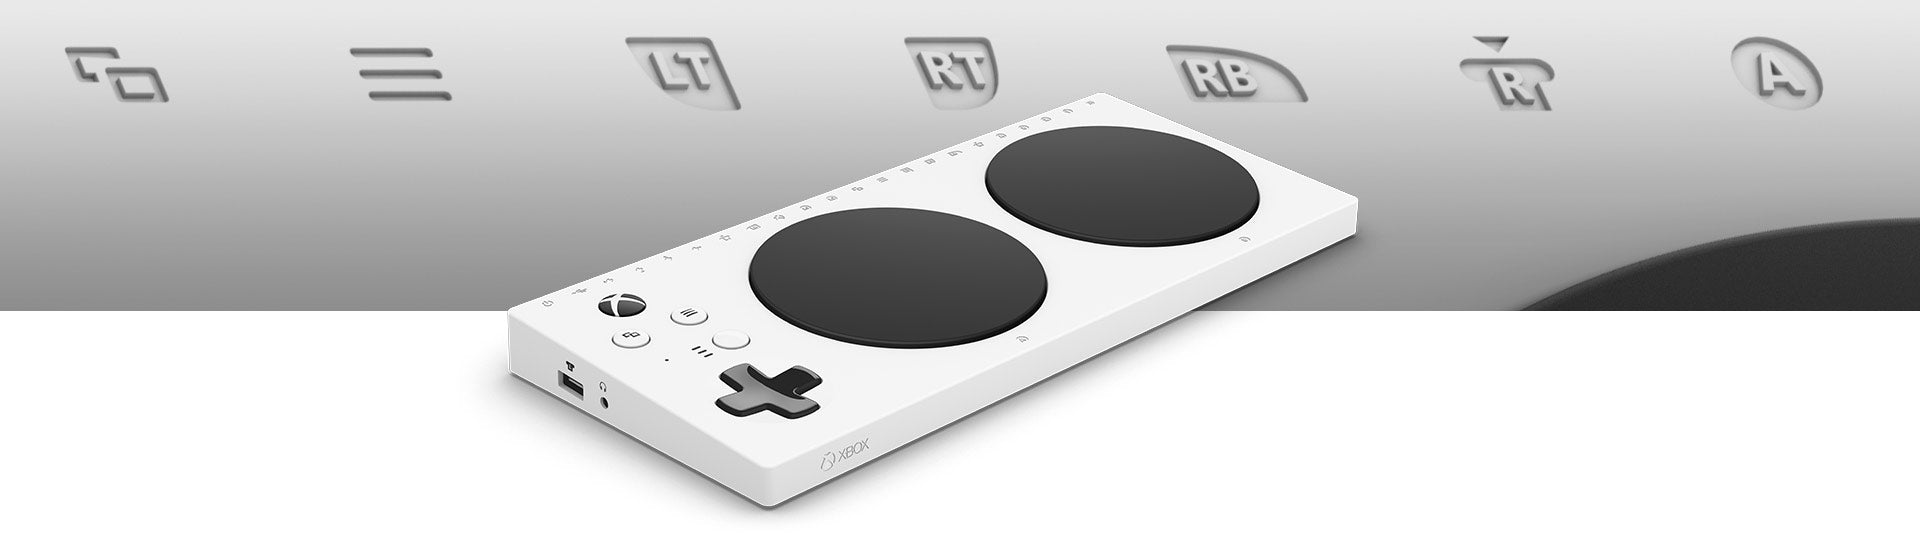 Xbox Adaptive Controller brings gaming to all